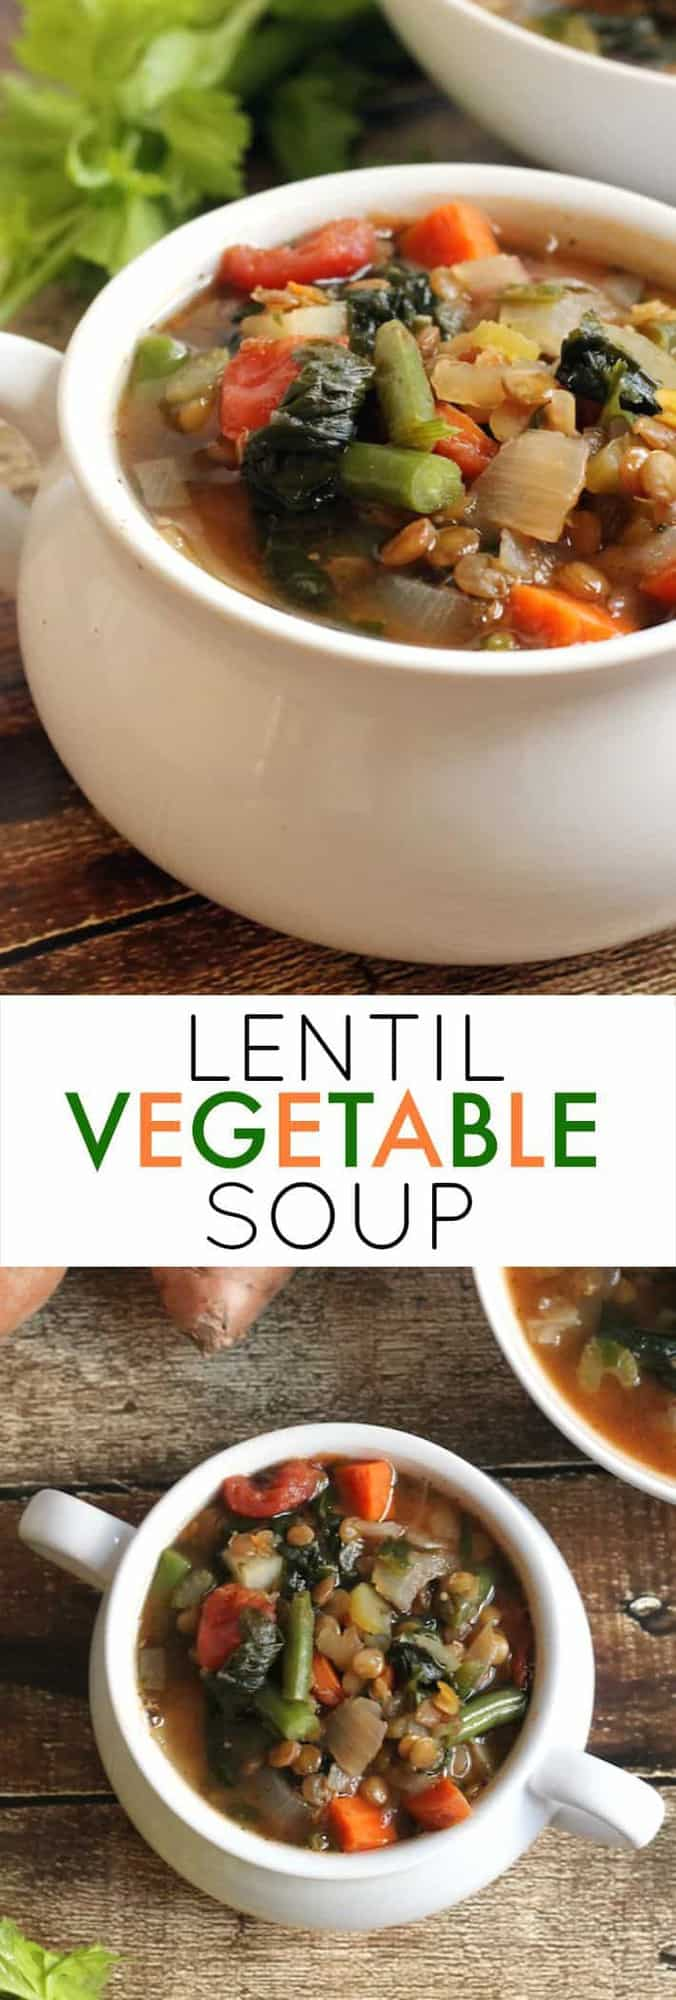 Lentil Vegetable Soup...a hearty, comforting, one-pot meal!